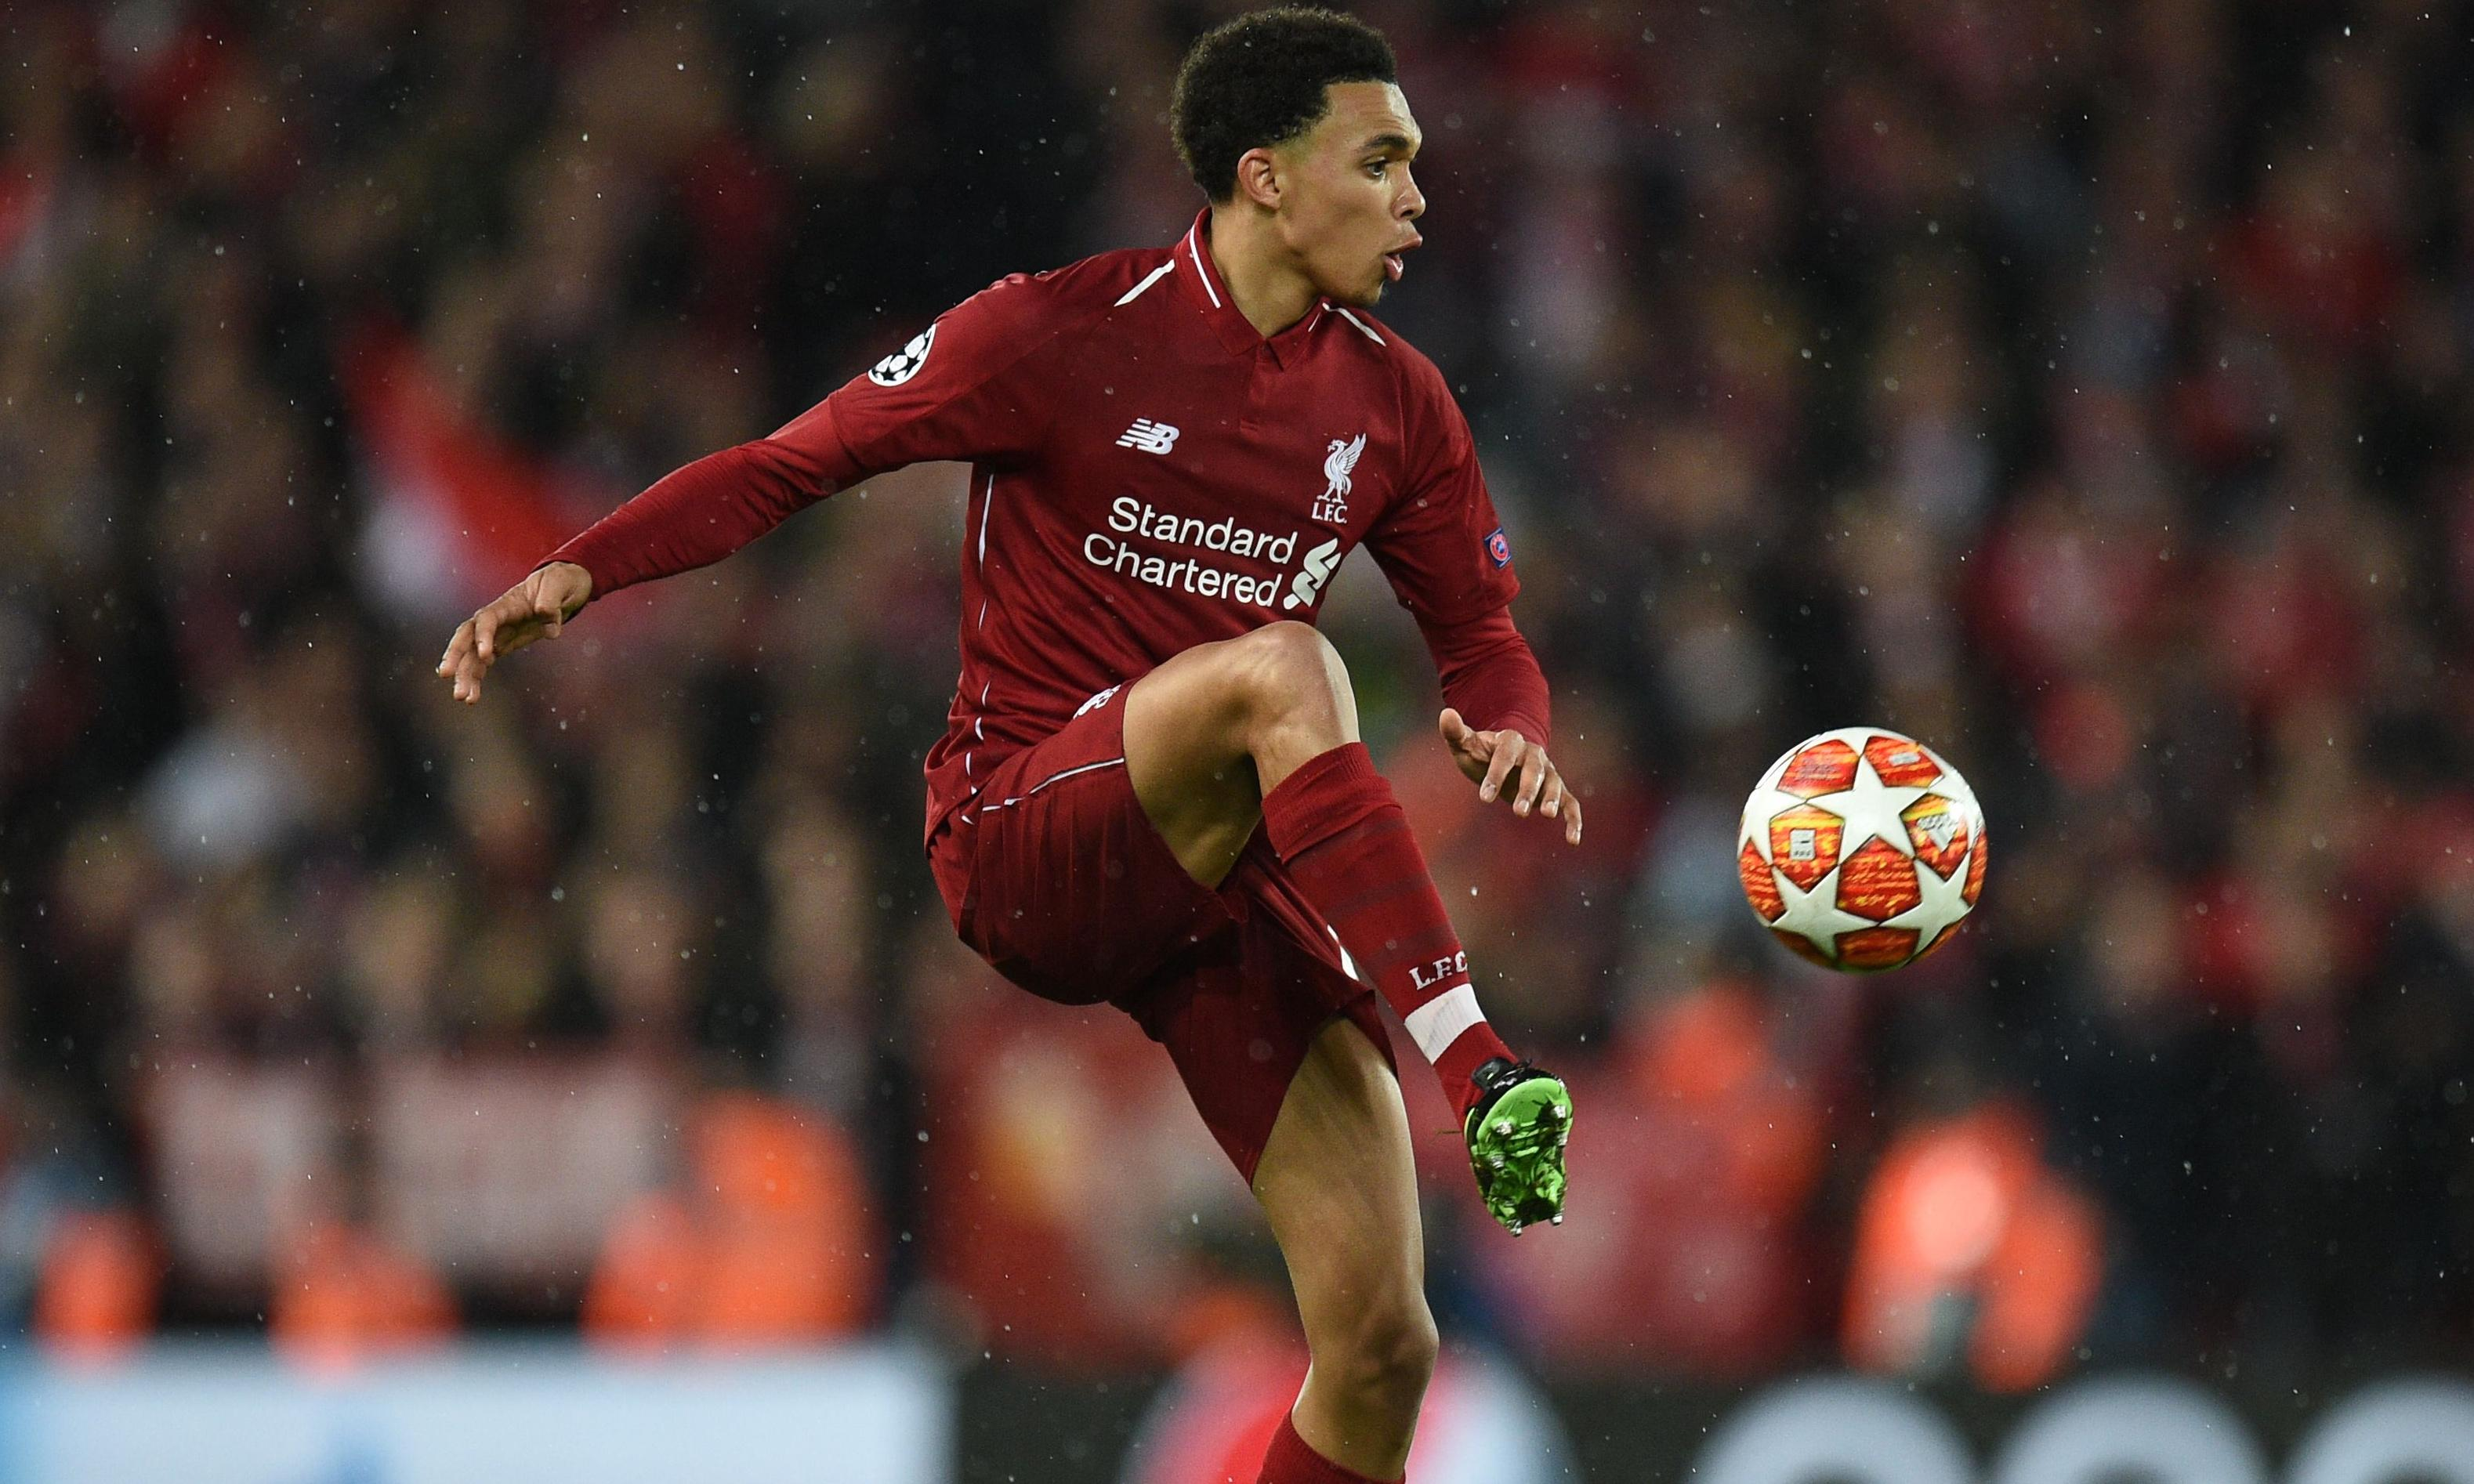 Alexander-Arnold: 'I use last year's loss at United as a learning point'